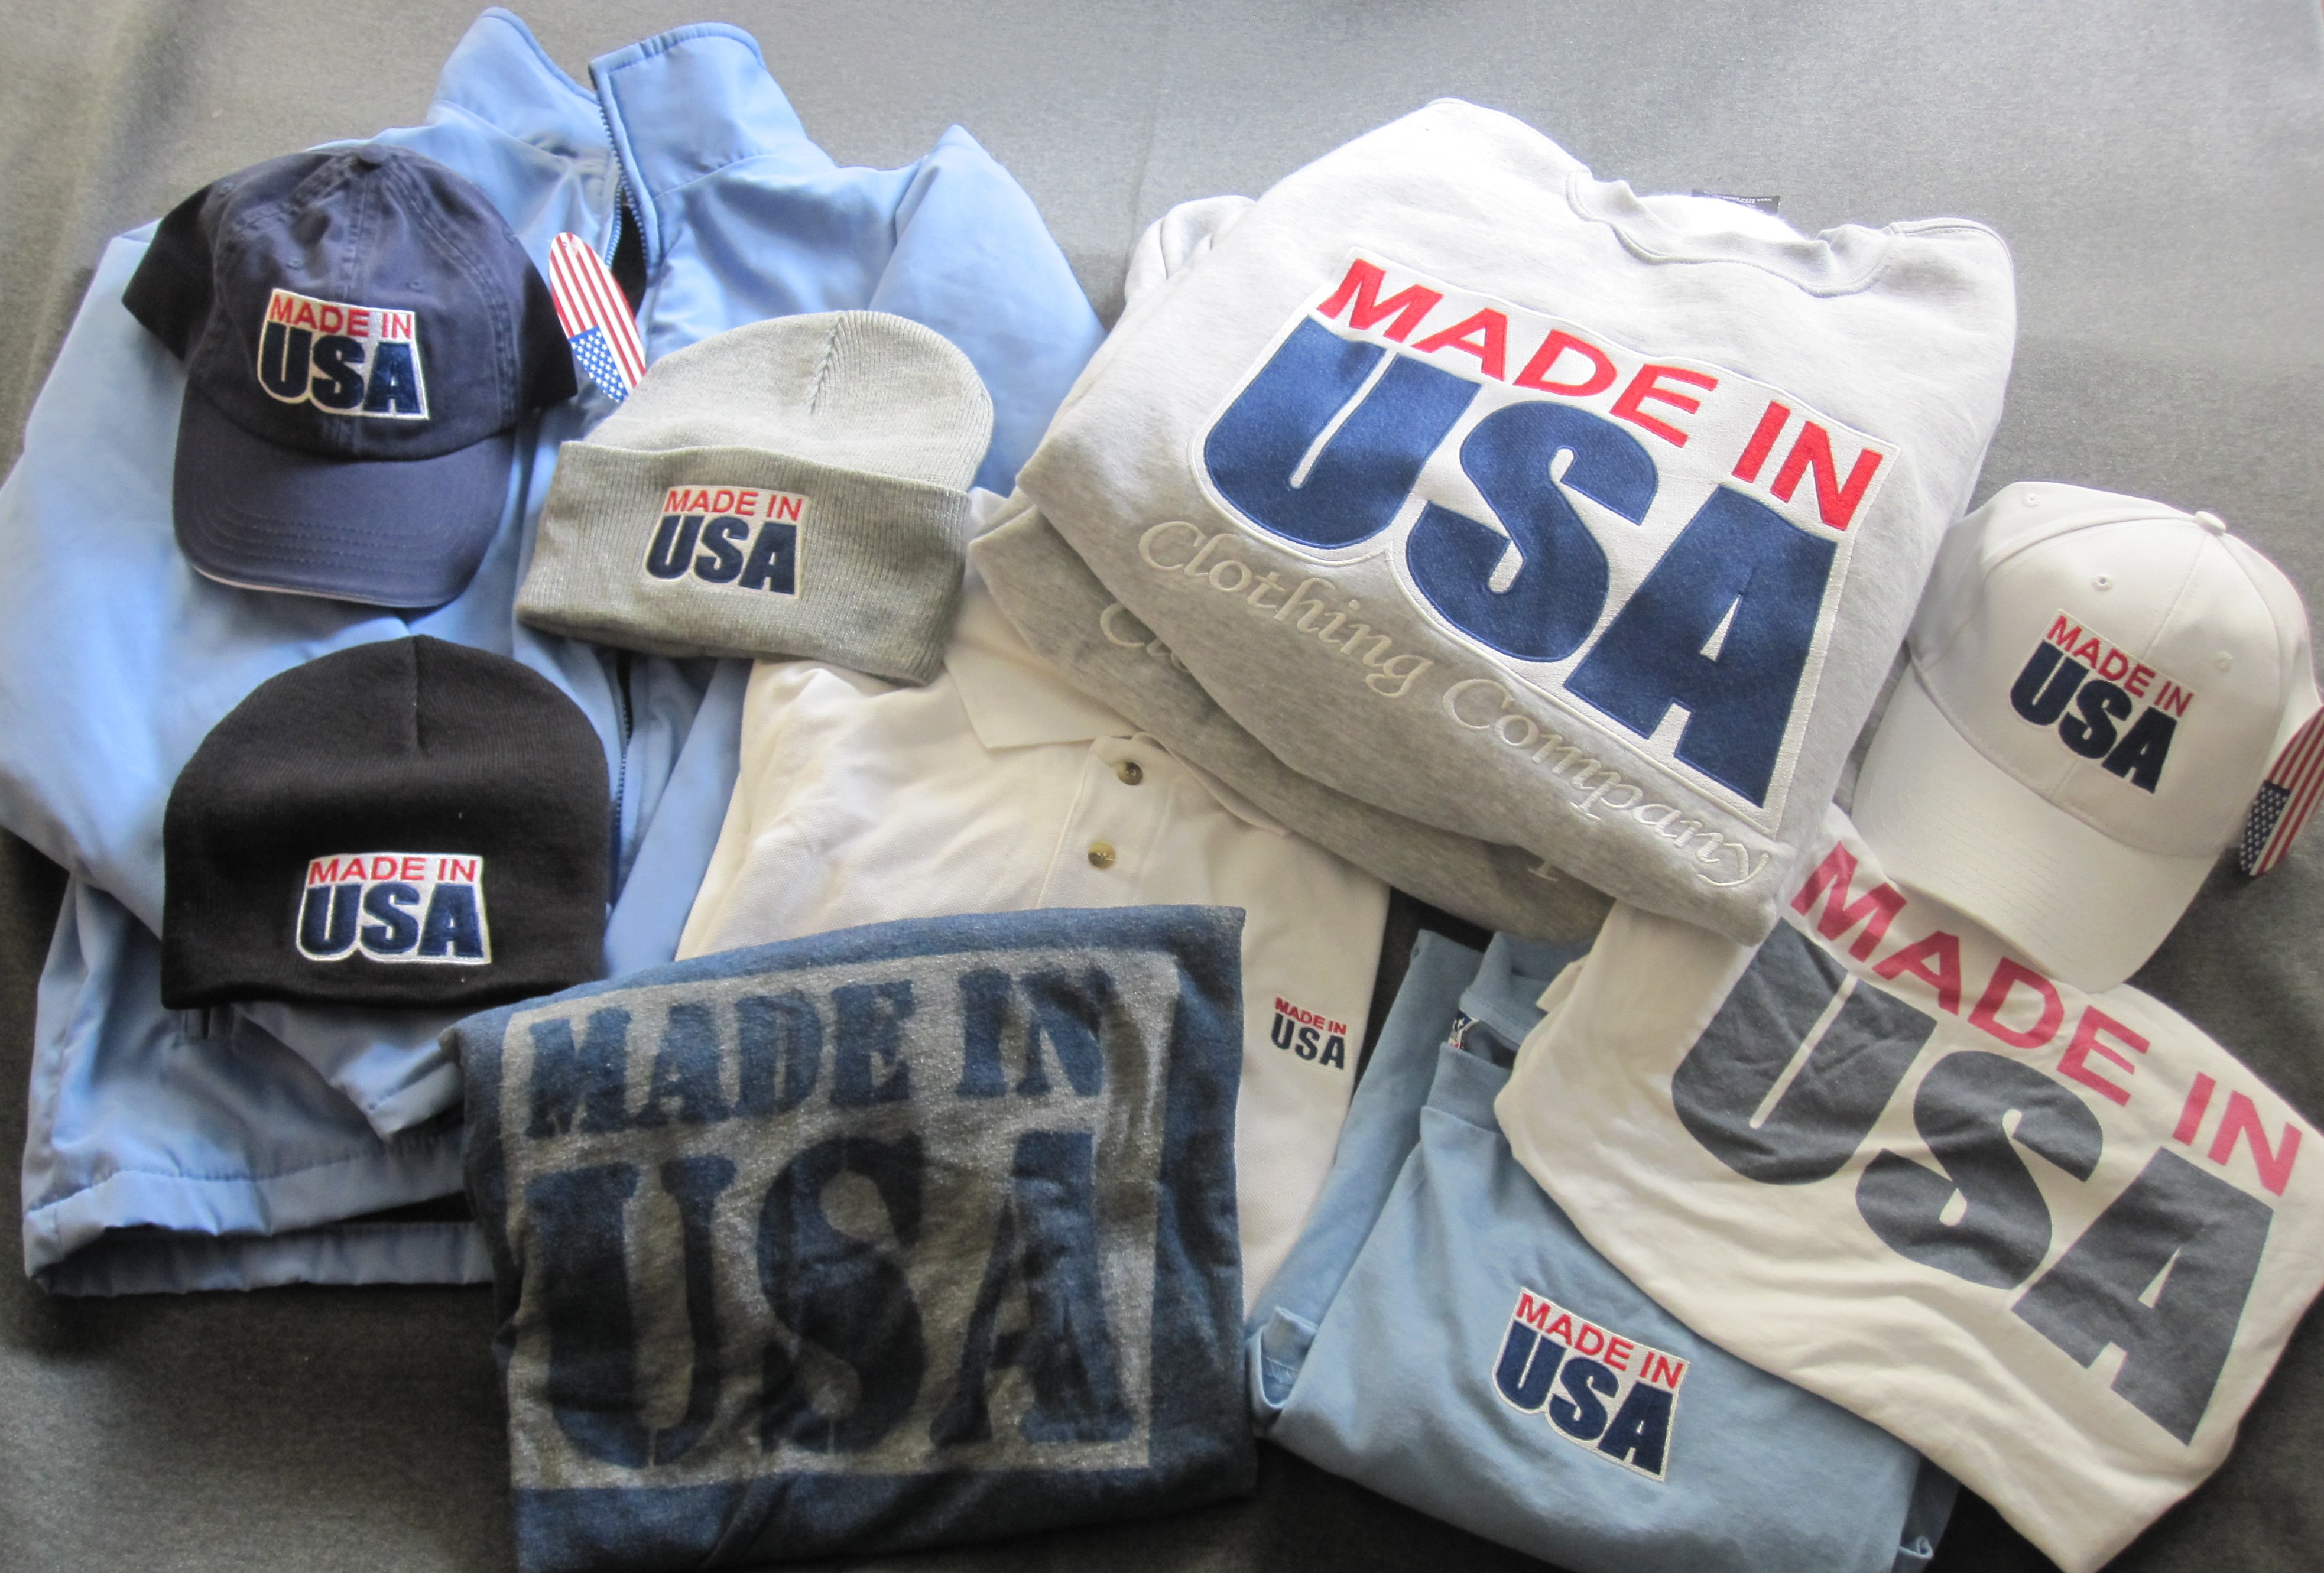 42 Clothing Brands That Are Still Made in America. By Every step of the manufacturing and supply process is all-American at Goodwear USA, a domestic clothing brand known for high-quality, lightweight shirts and sweatshirts for men and women. The cotton the .